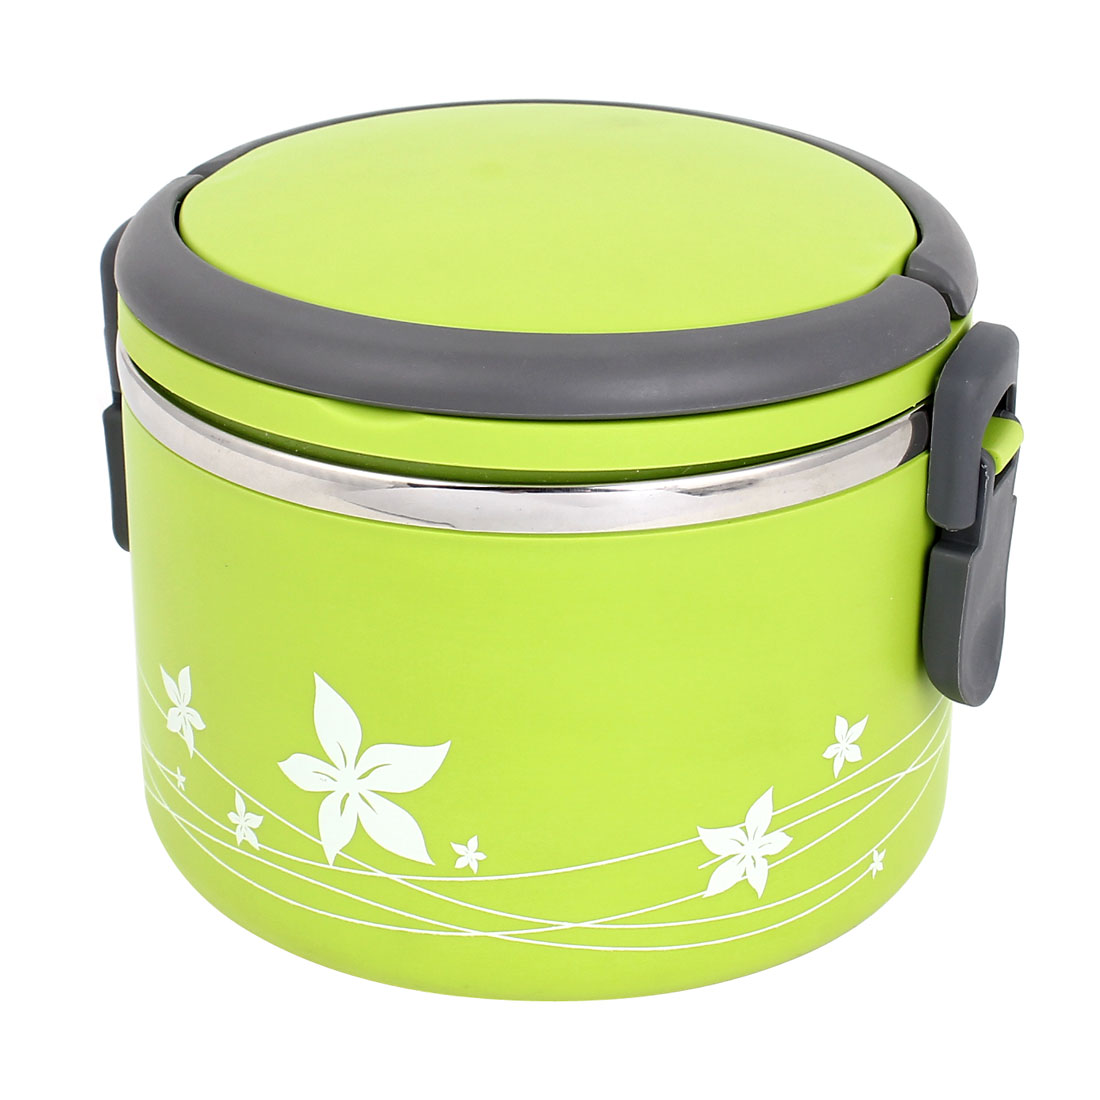 Green Cylinder Shaped Stainless Steel Inner Keep Warm Lunch Box Bento Container